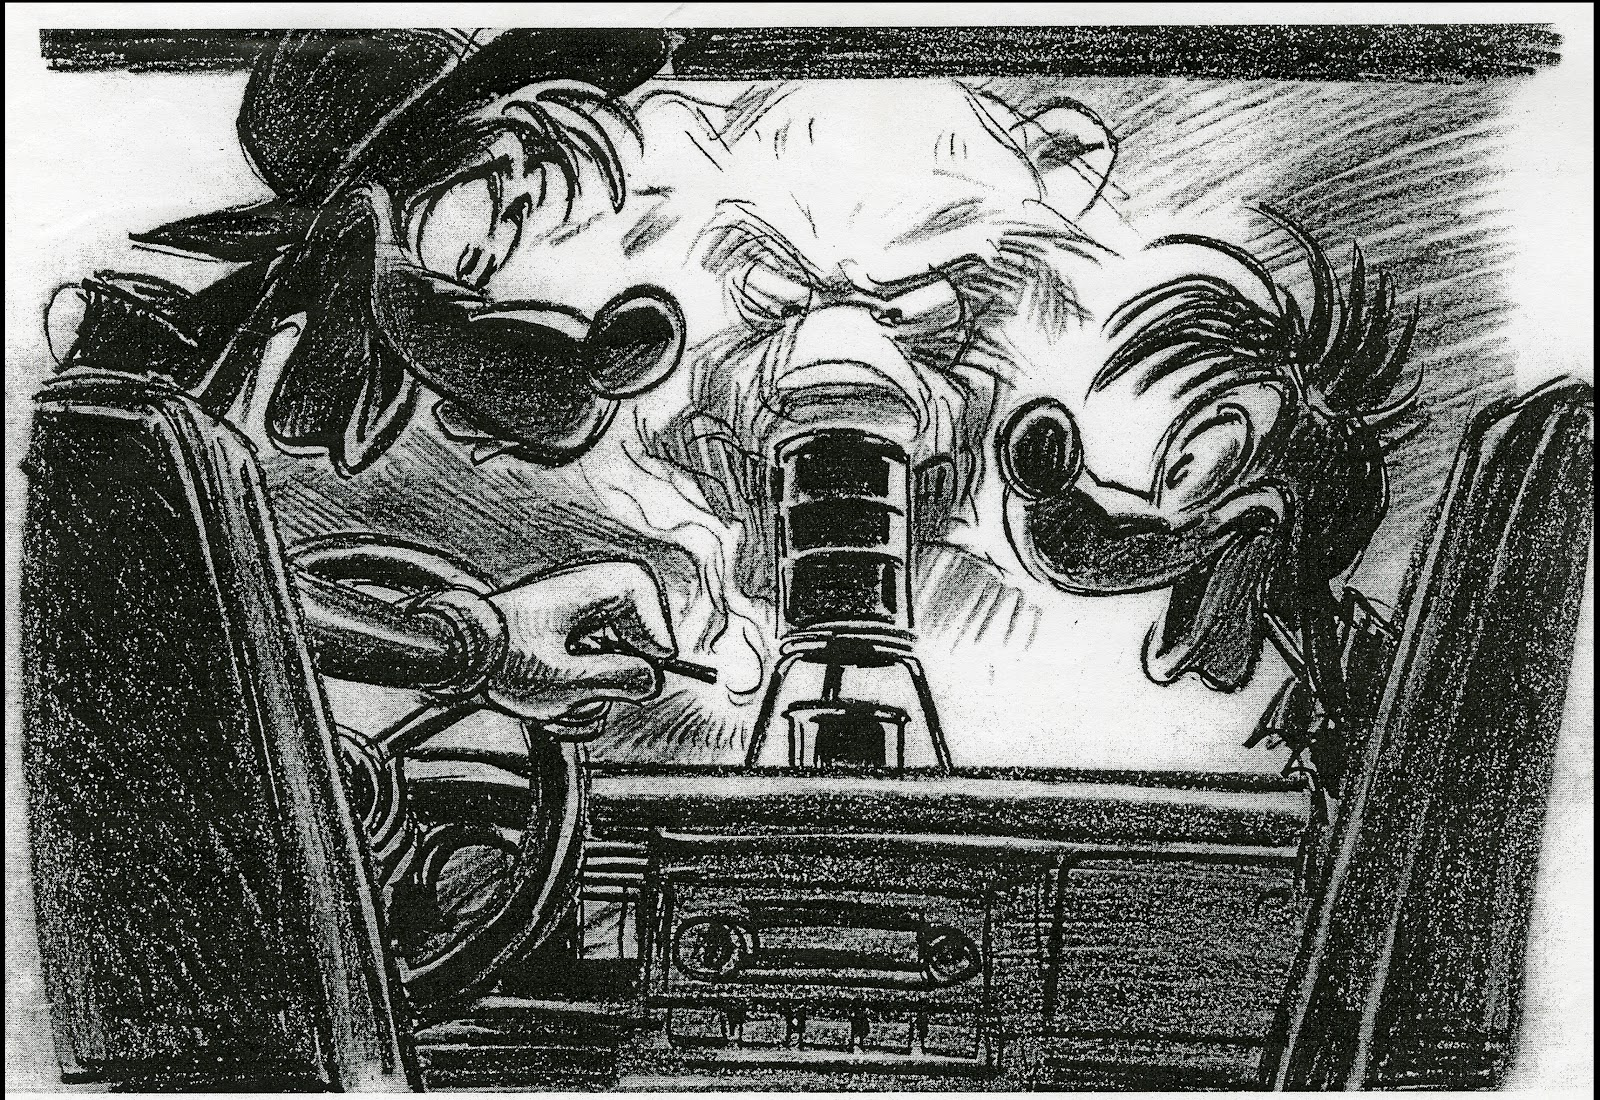 Andy Gaskill  The Goofy Movie  Animation